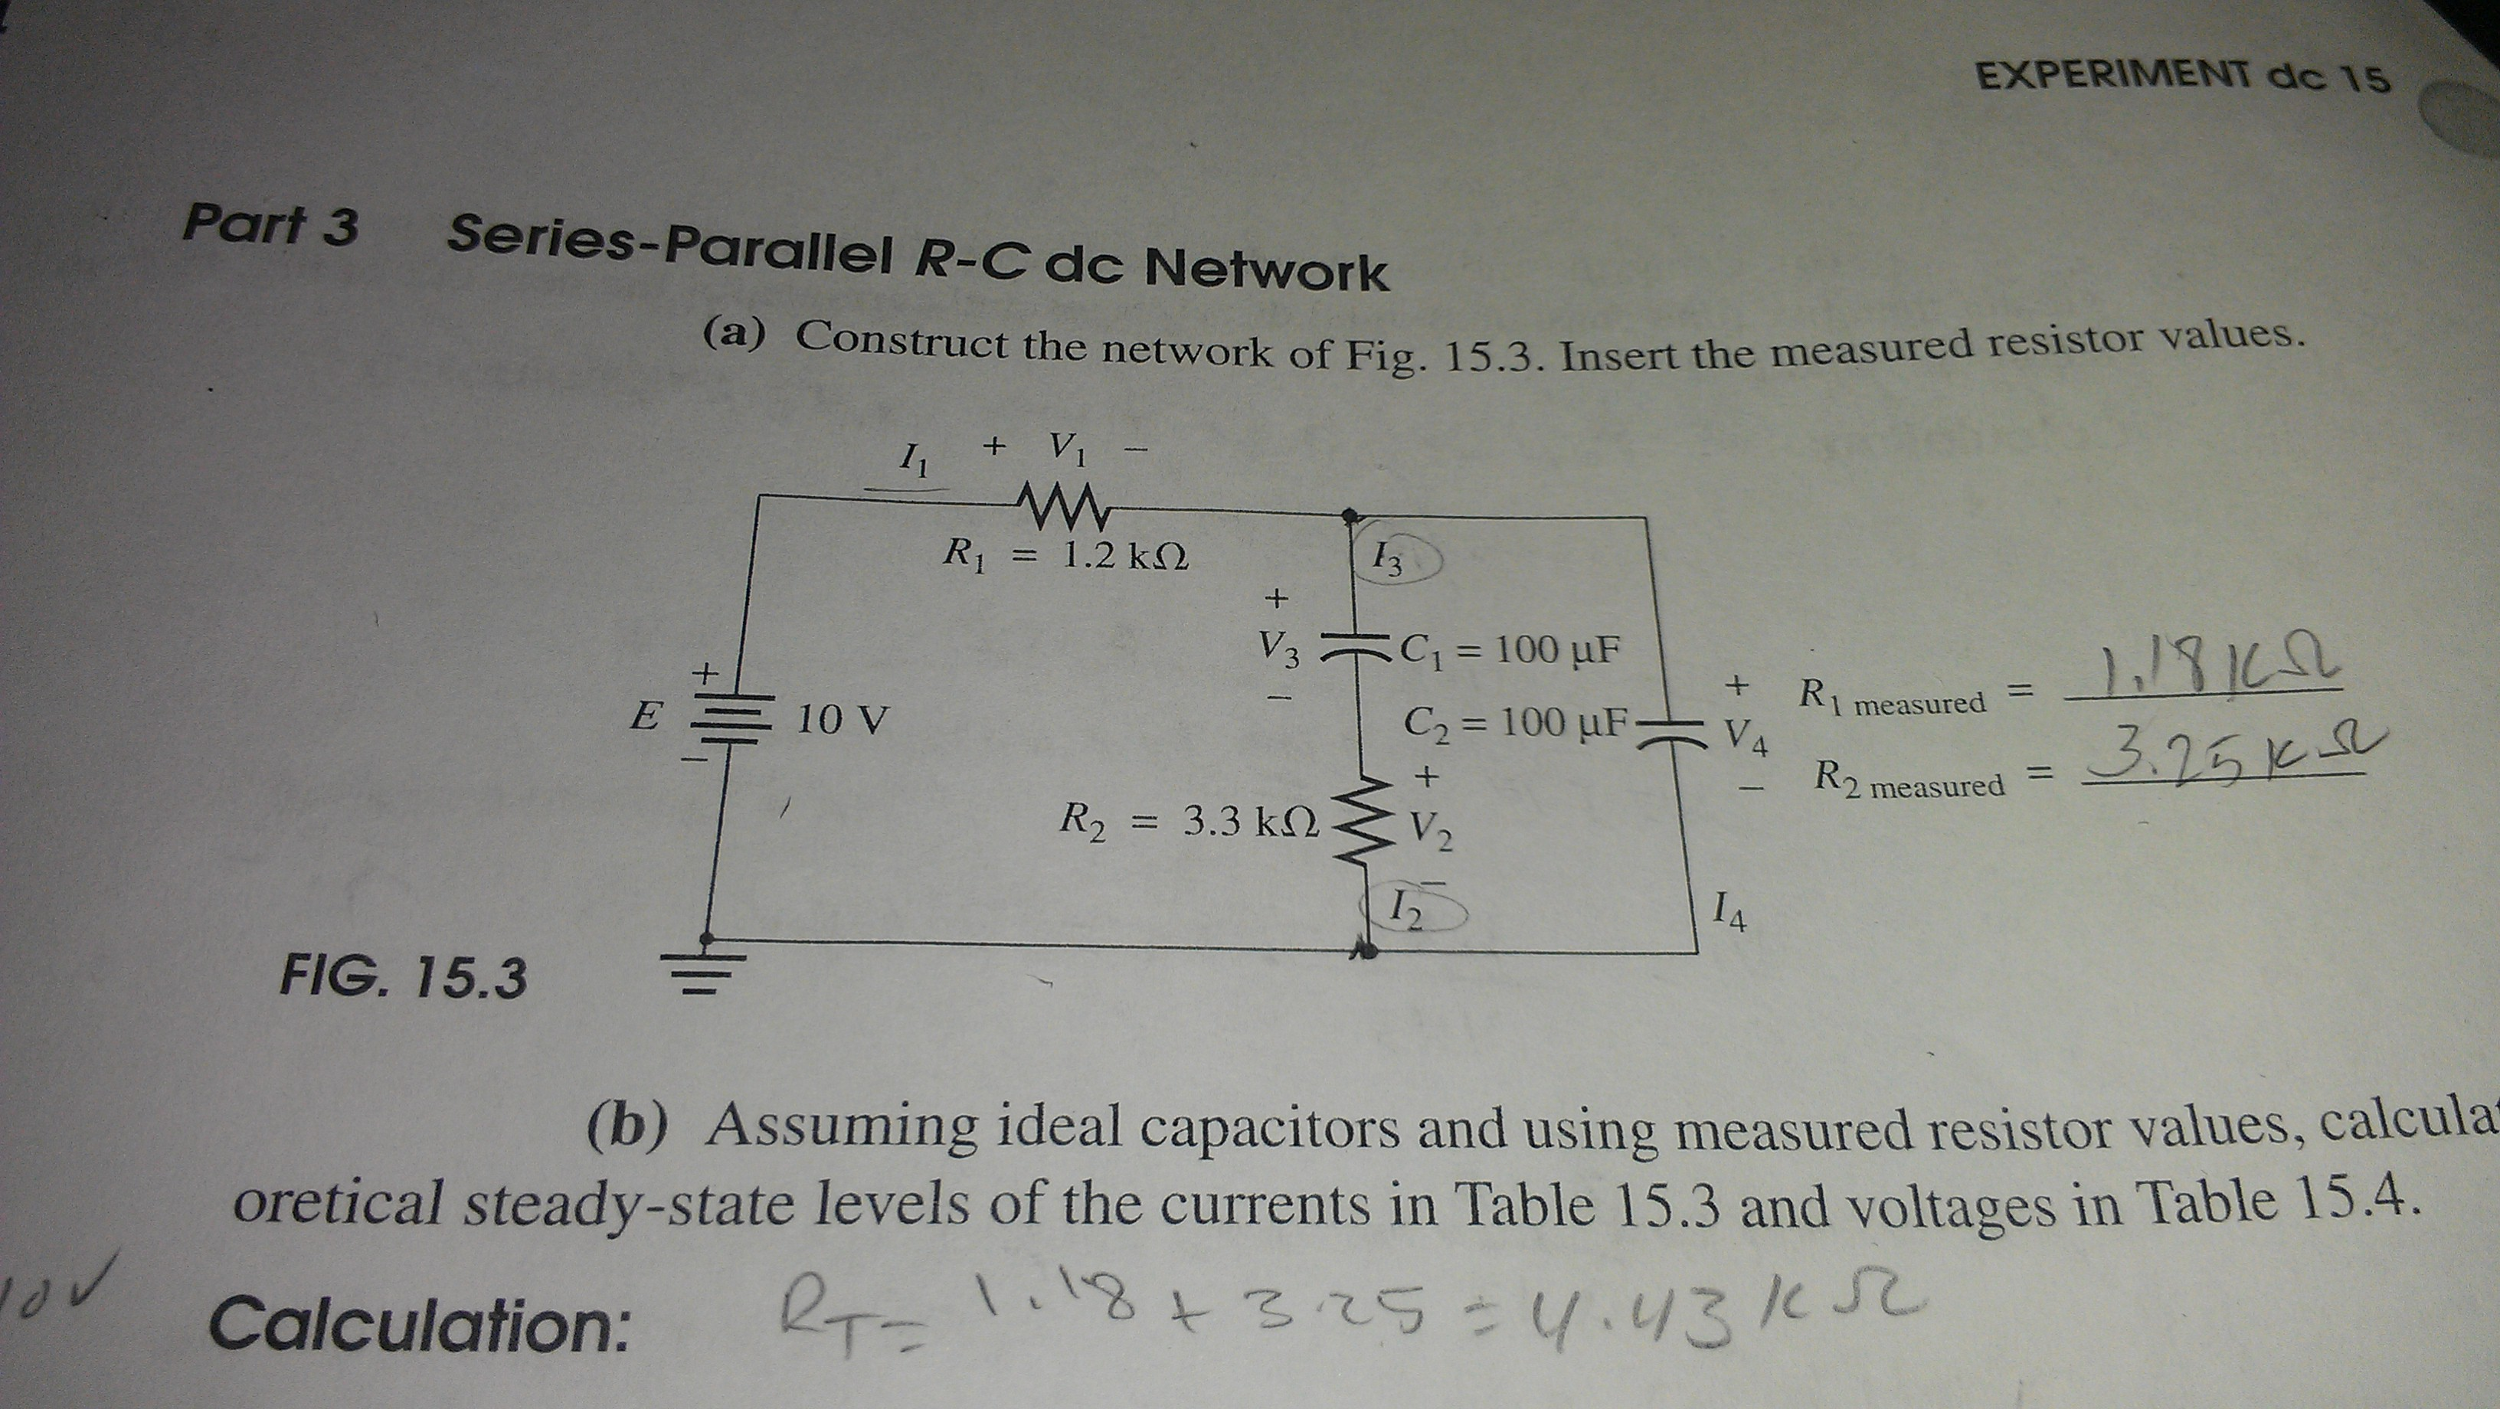 Series-Parallel R-C dc Network Construct the netwo